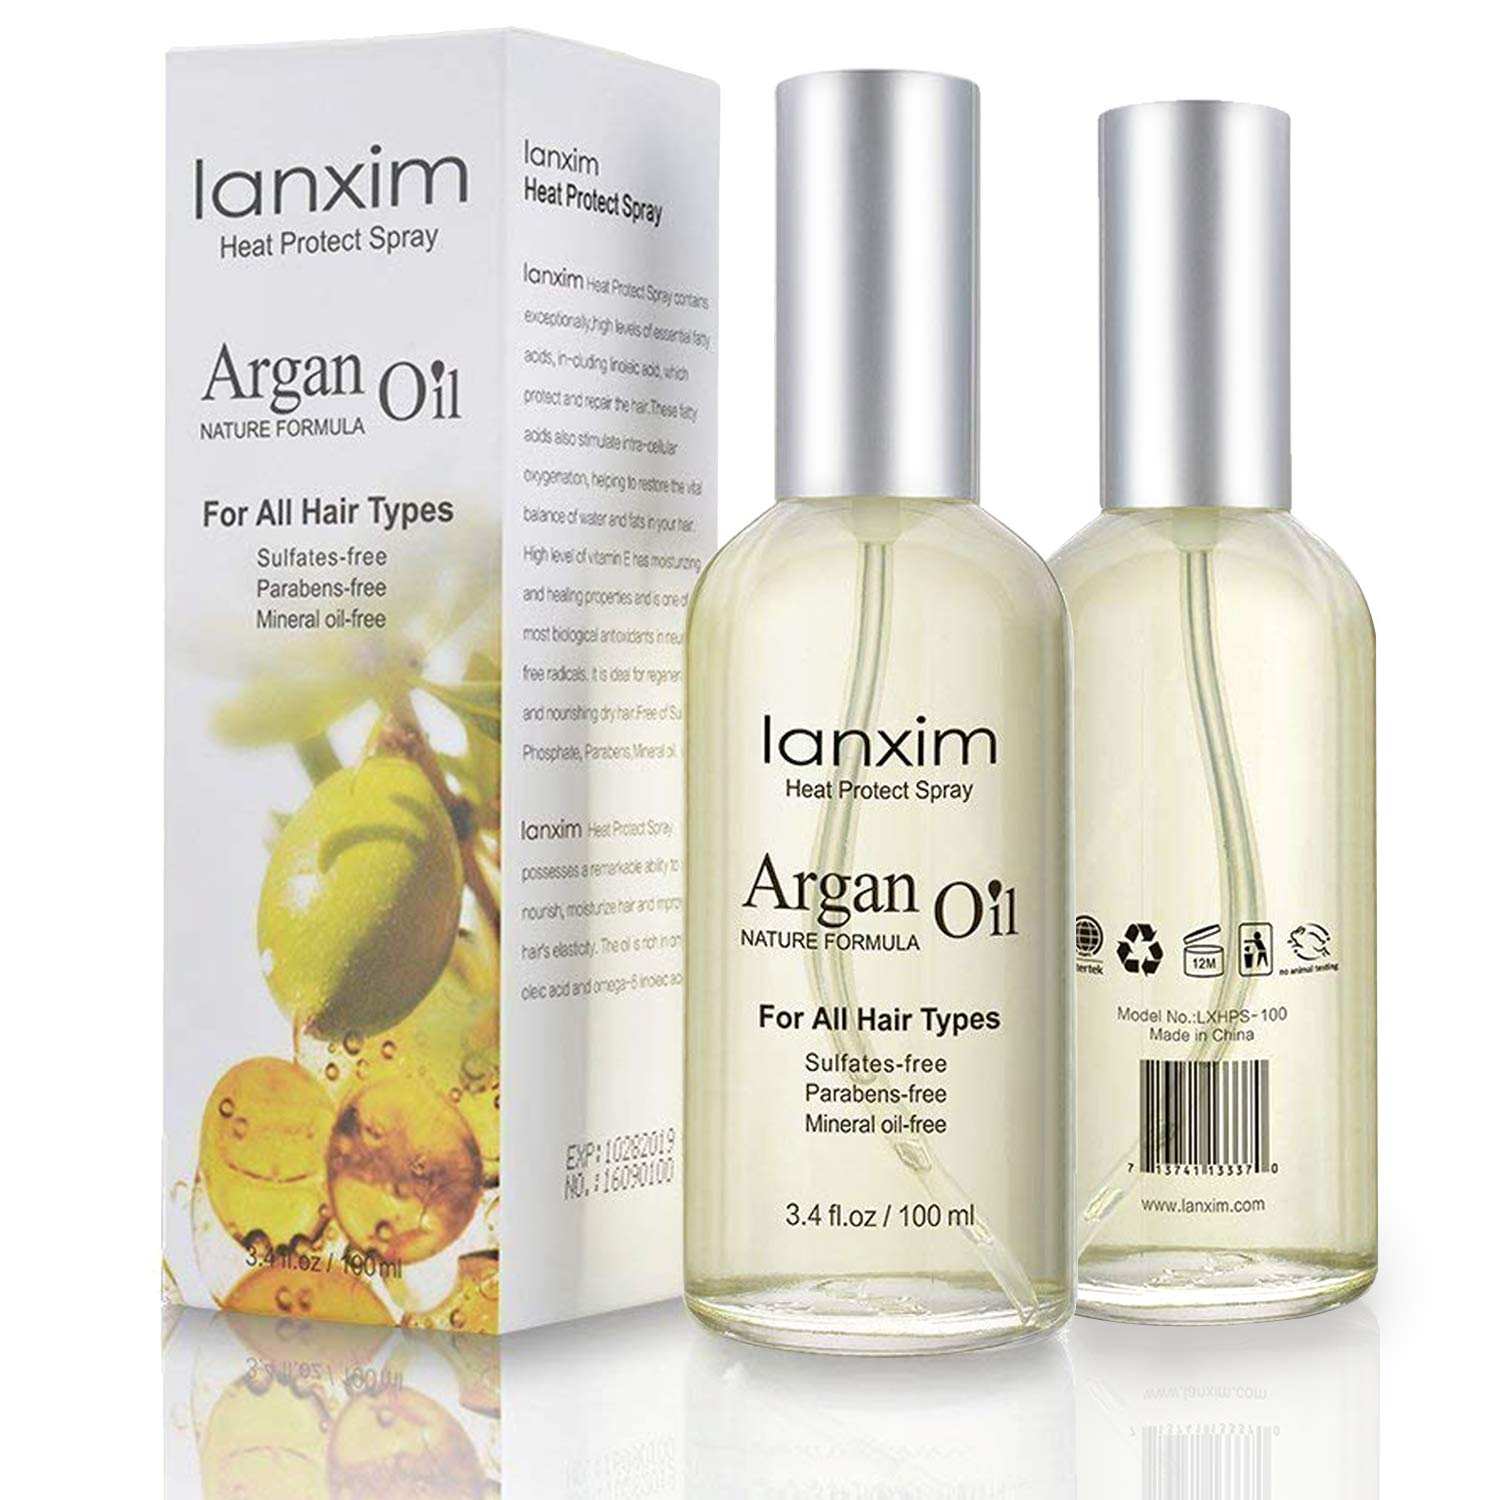 Argan Oil Hair Spray Sunscreen Heat Protection - Thermal Shield Pre Styling Heat Defence Detangling &Conditioning Sheen Hair Spray 100ml for All Hair Types Lanxim